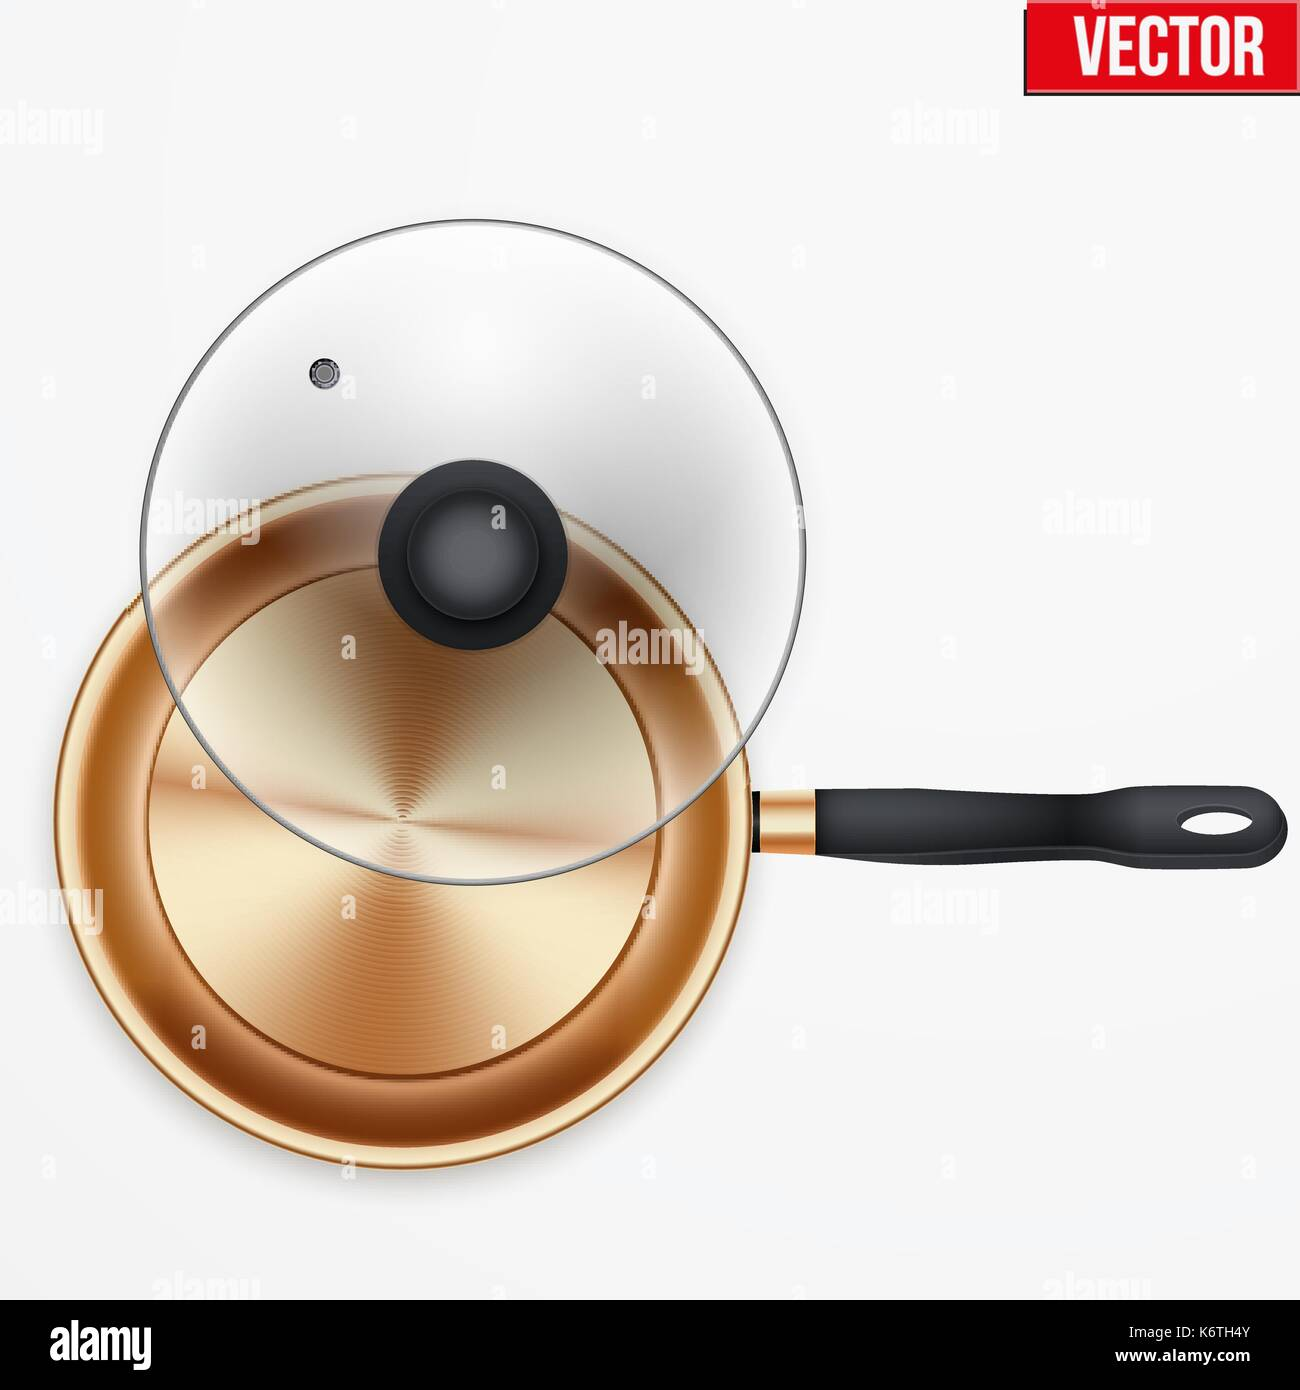 Classic brass fry pan - Stock Vector